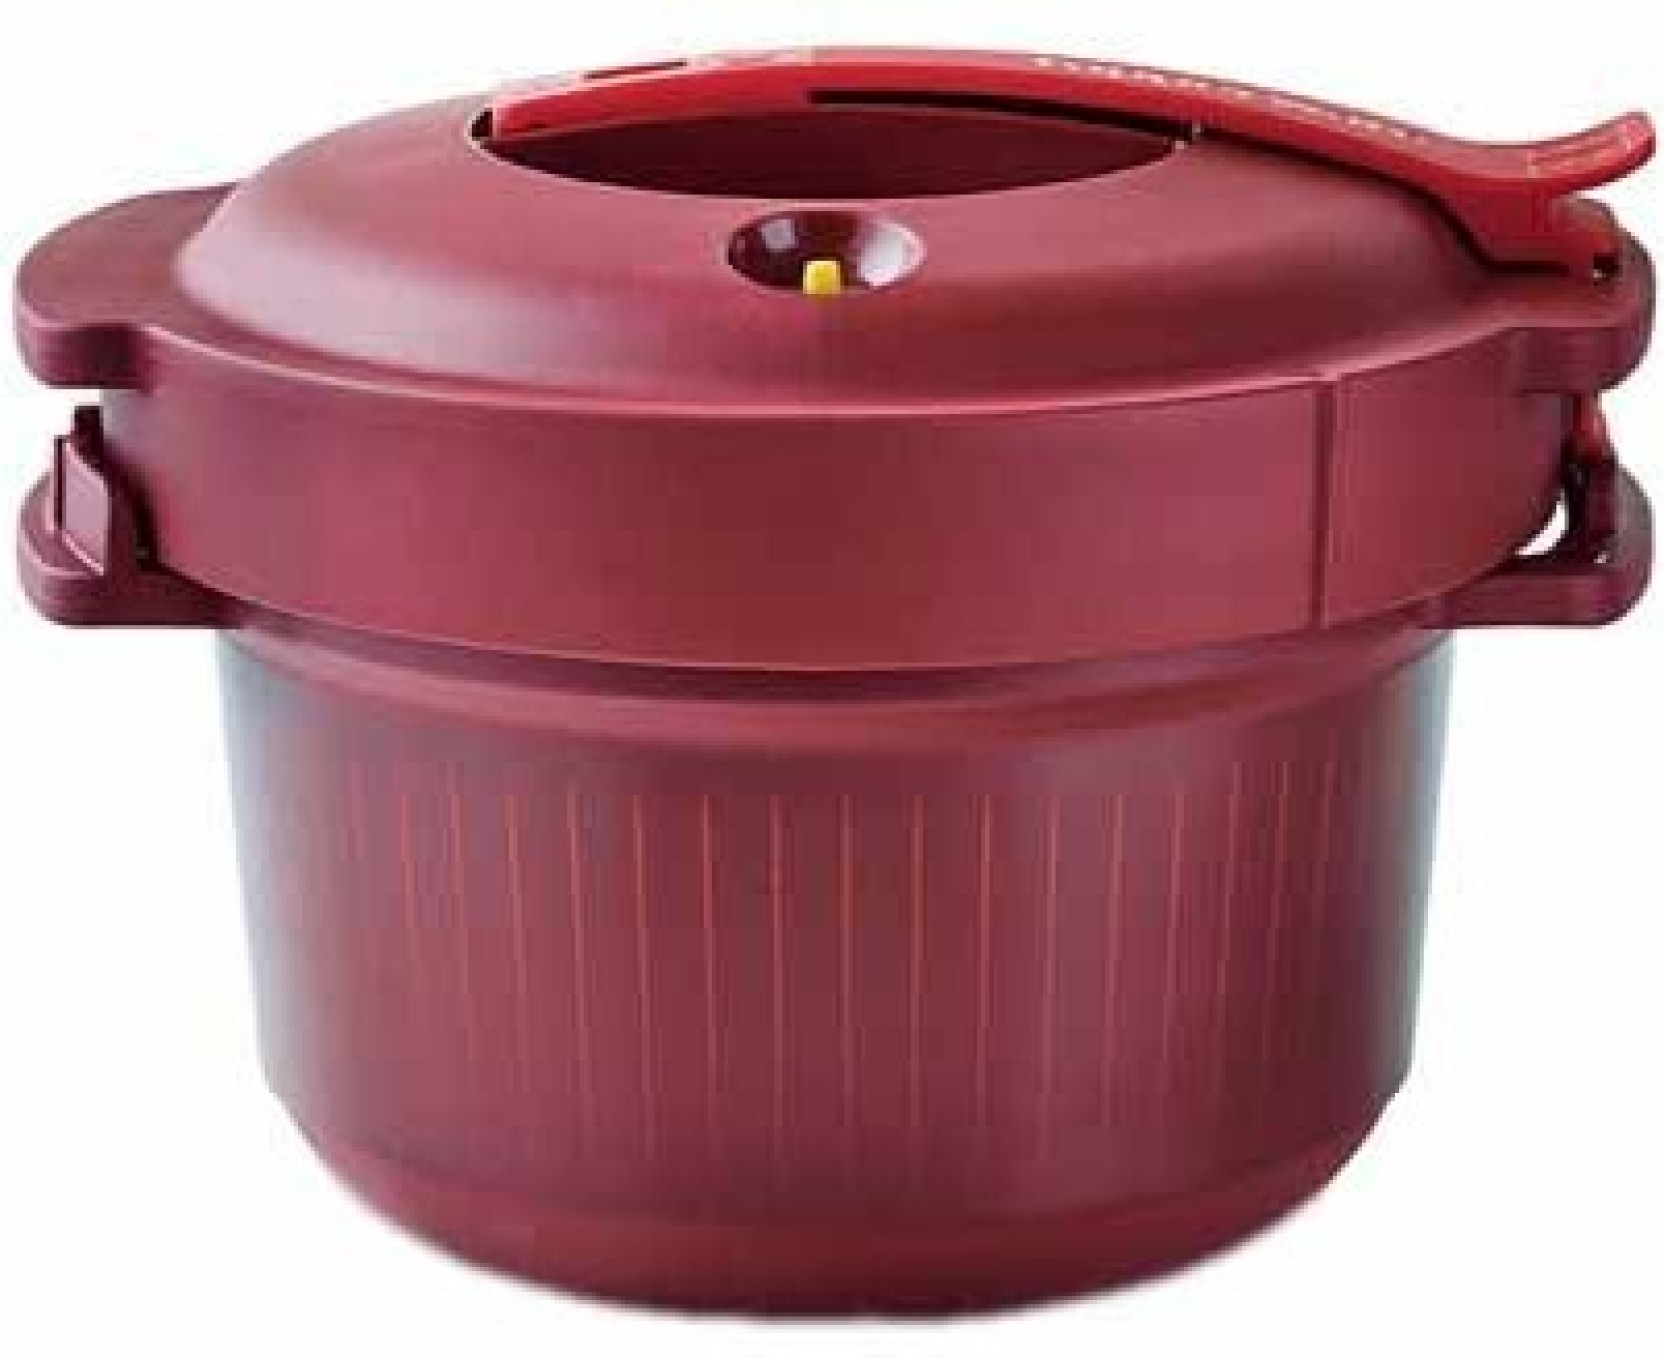 Tupperware Micro Oven Pressure Cooker Cookware Set Price In India Buy Induction Circuit Boardelectric Cookerinduction Add To Cart Now